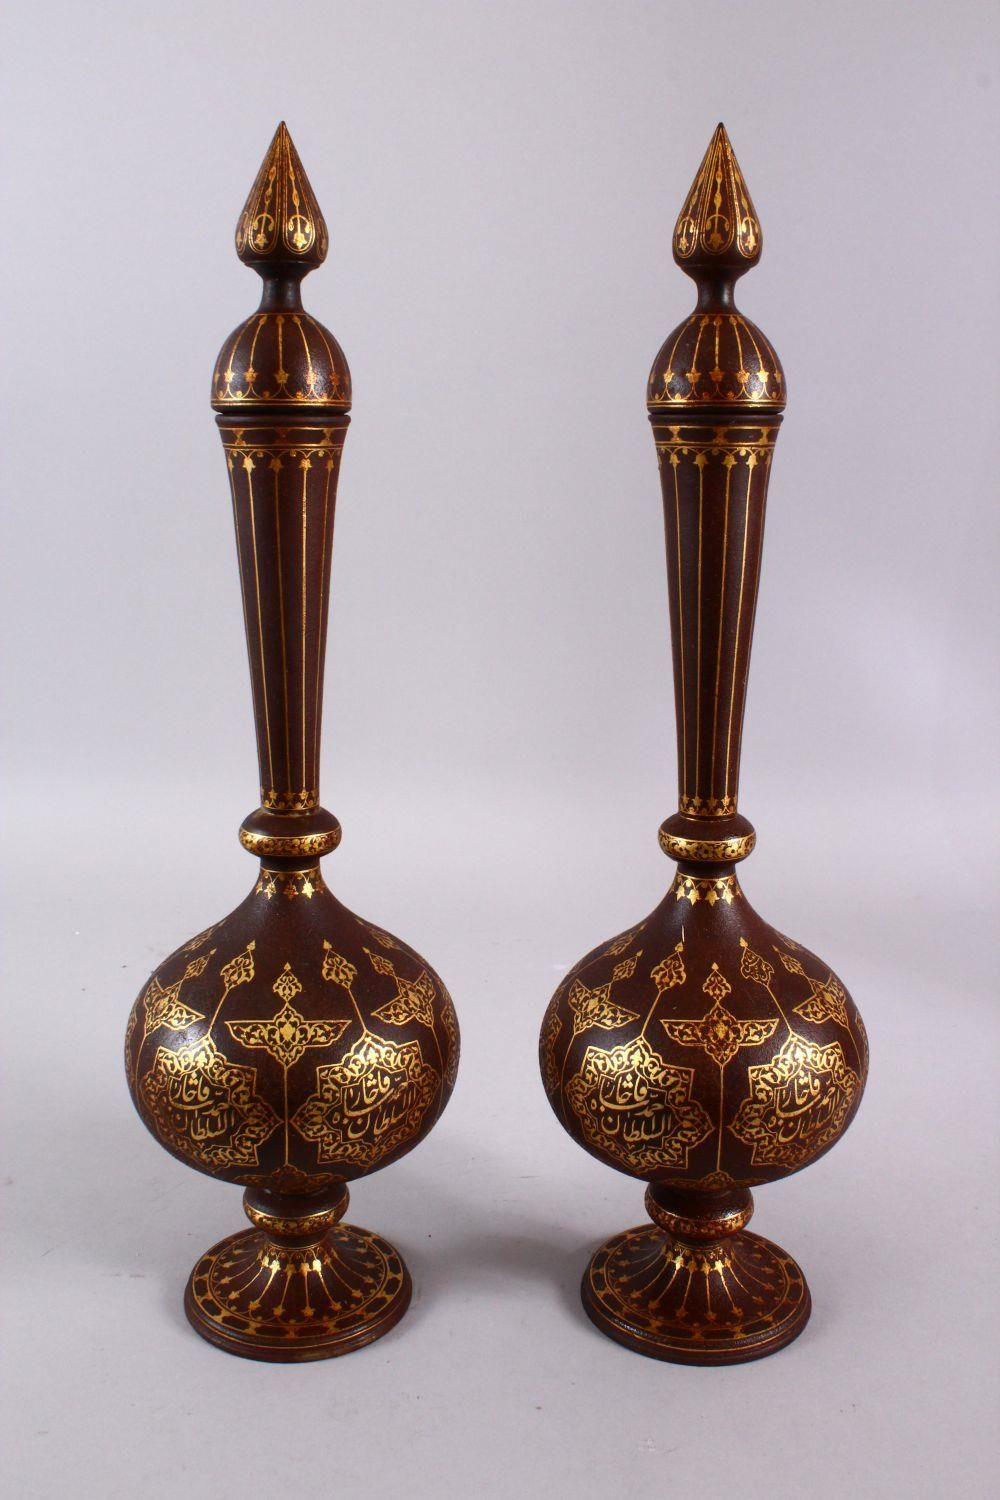 A PAIR OF ISLAMIC DAMASCENE INLAID STEEL BOTTLE & COVERS, each with gold inlaid panels of star - Image 4 of 8